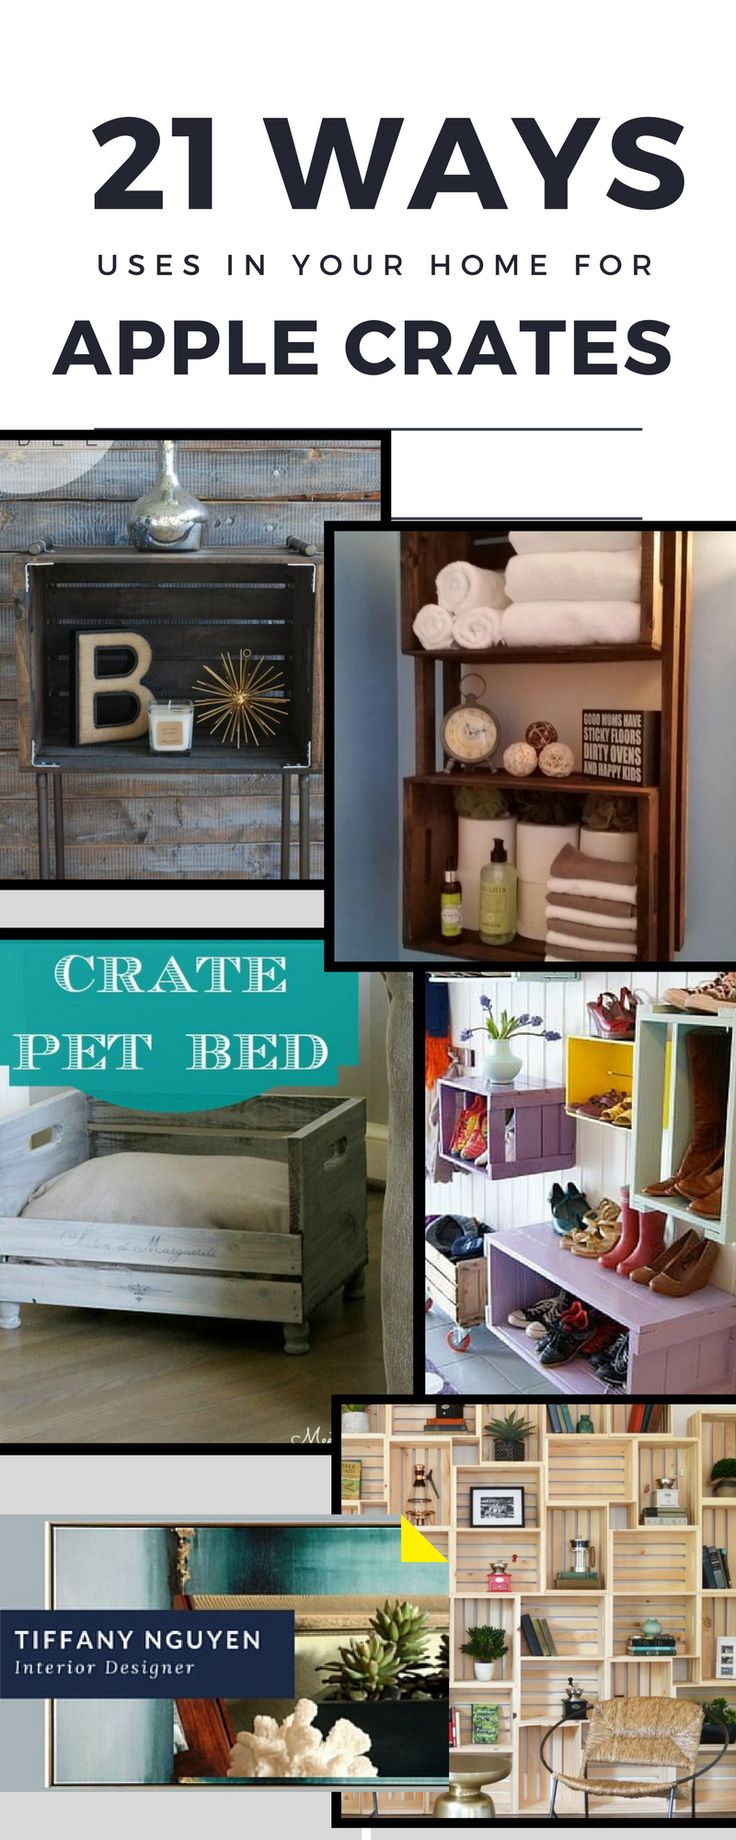 Apple box boutique inc christmas hours - Diy Apple Crate Box Shelves Wall Unit Coffee Table Interior